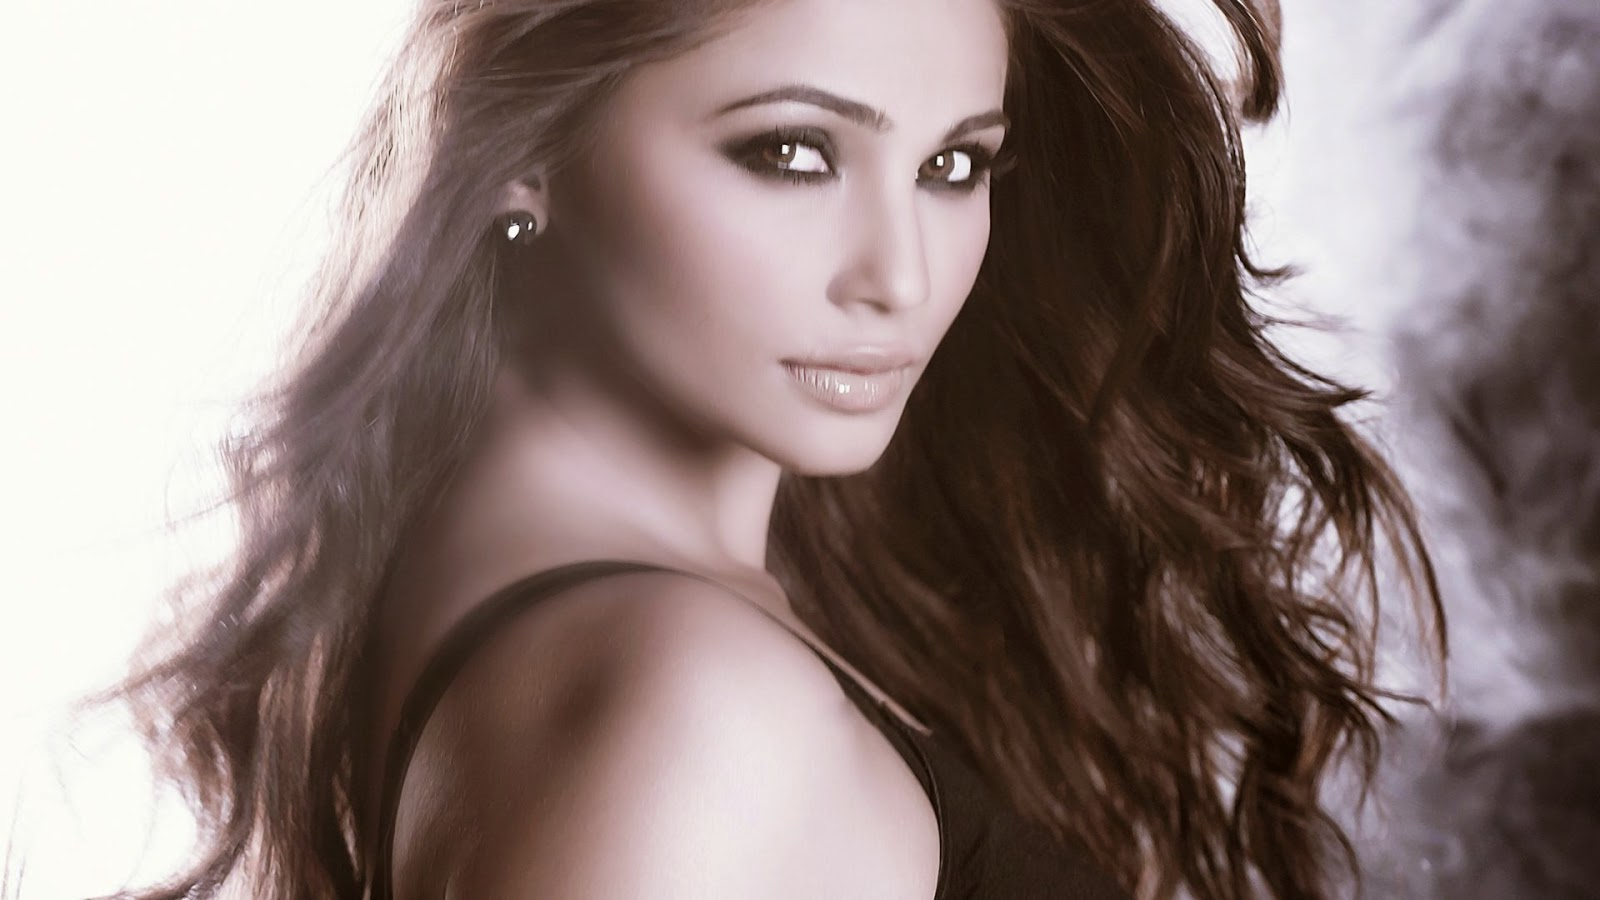 Daisy Shah Hd Wallpaper: CRazy ALL OvER ME: Hot Daisy Shah, Daisy Shah HD Hot